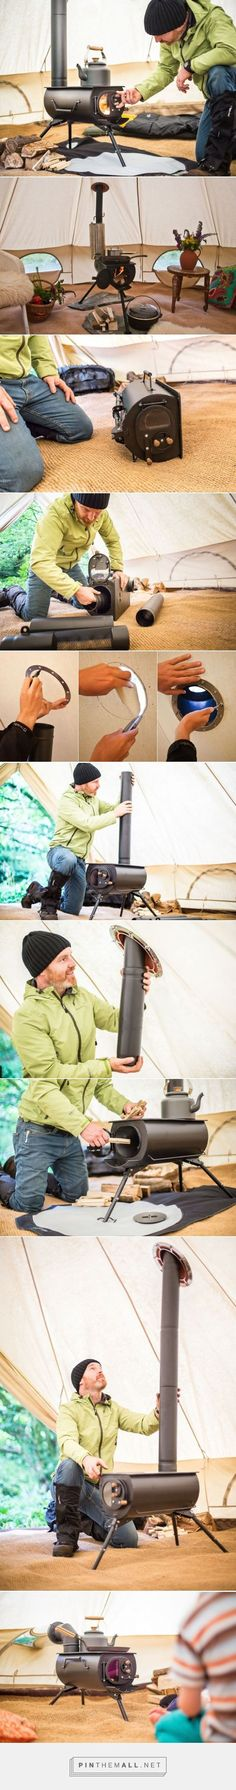 Frontier Plus – Portable Woodburning Stove Can Be Installed in Tents, Teepees, or Small Cabins | Tuvie